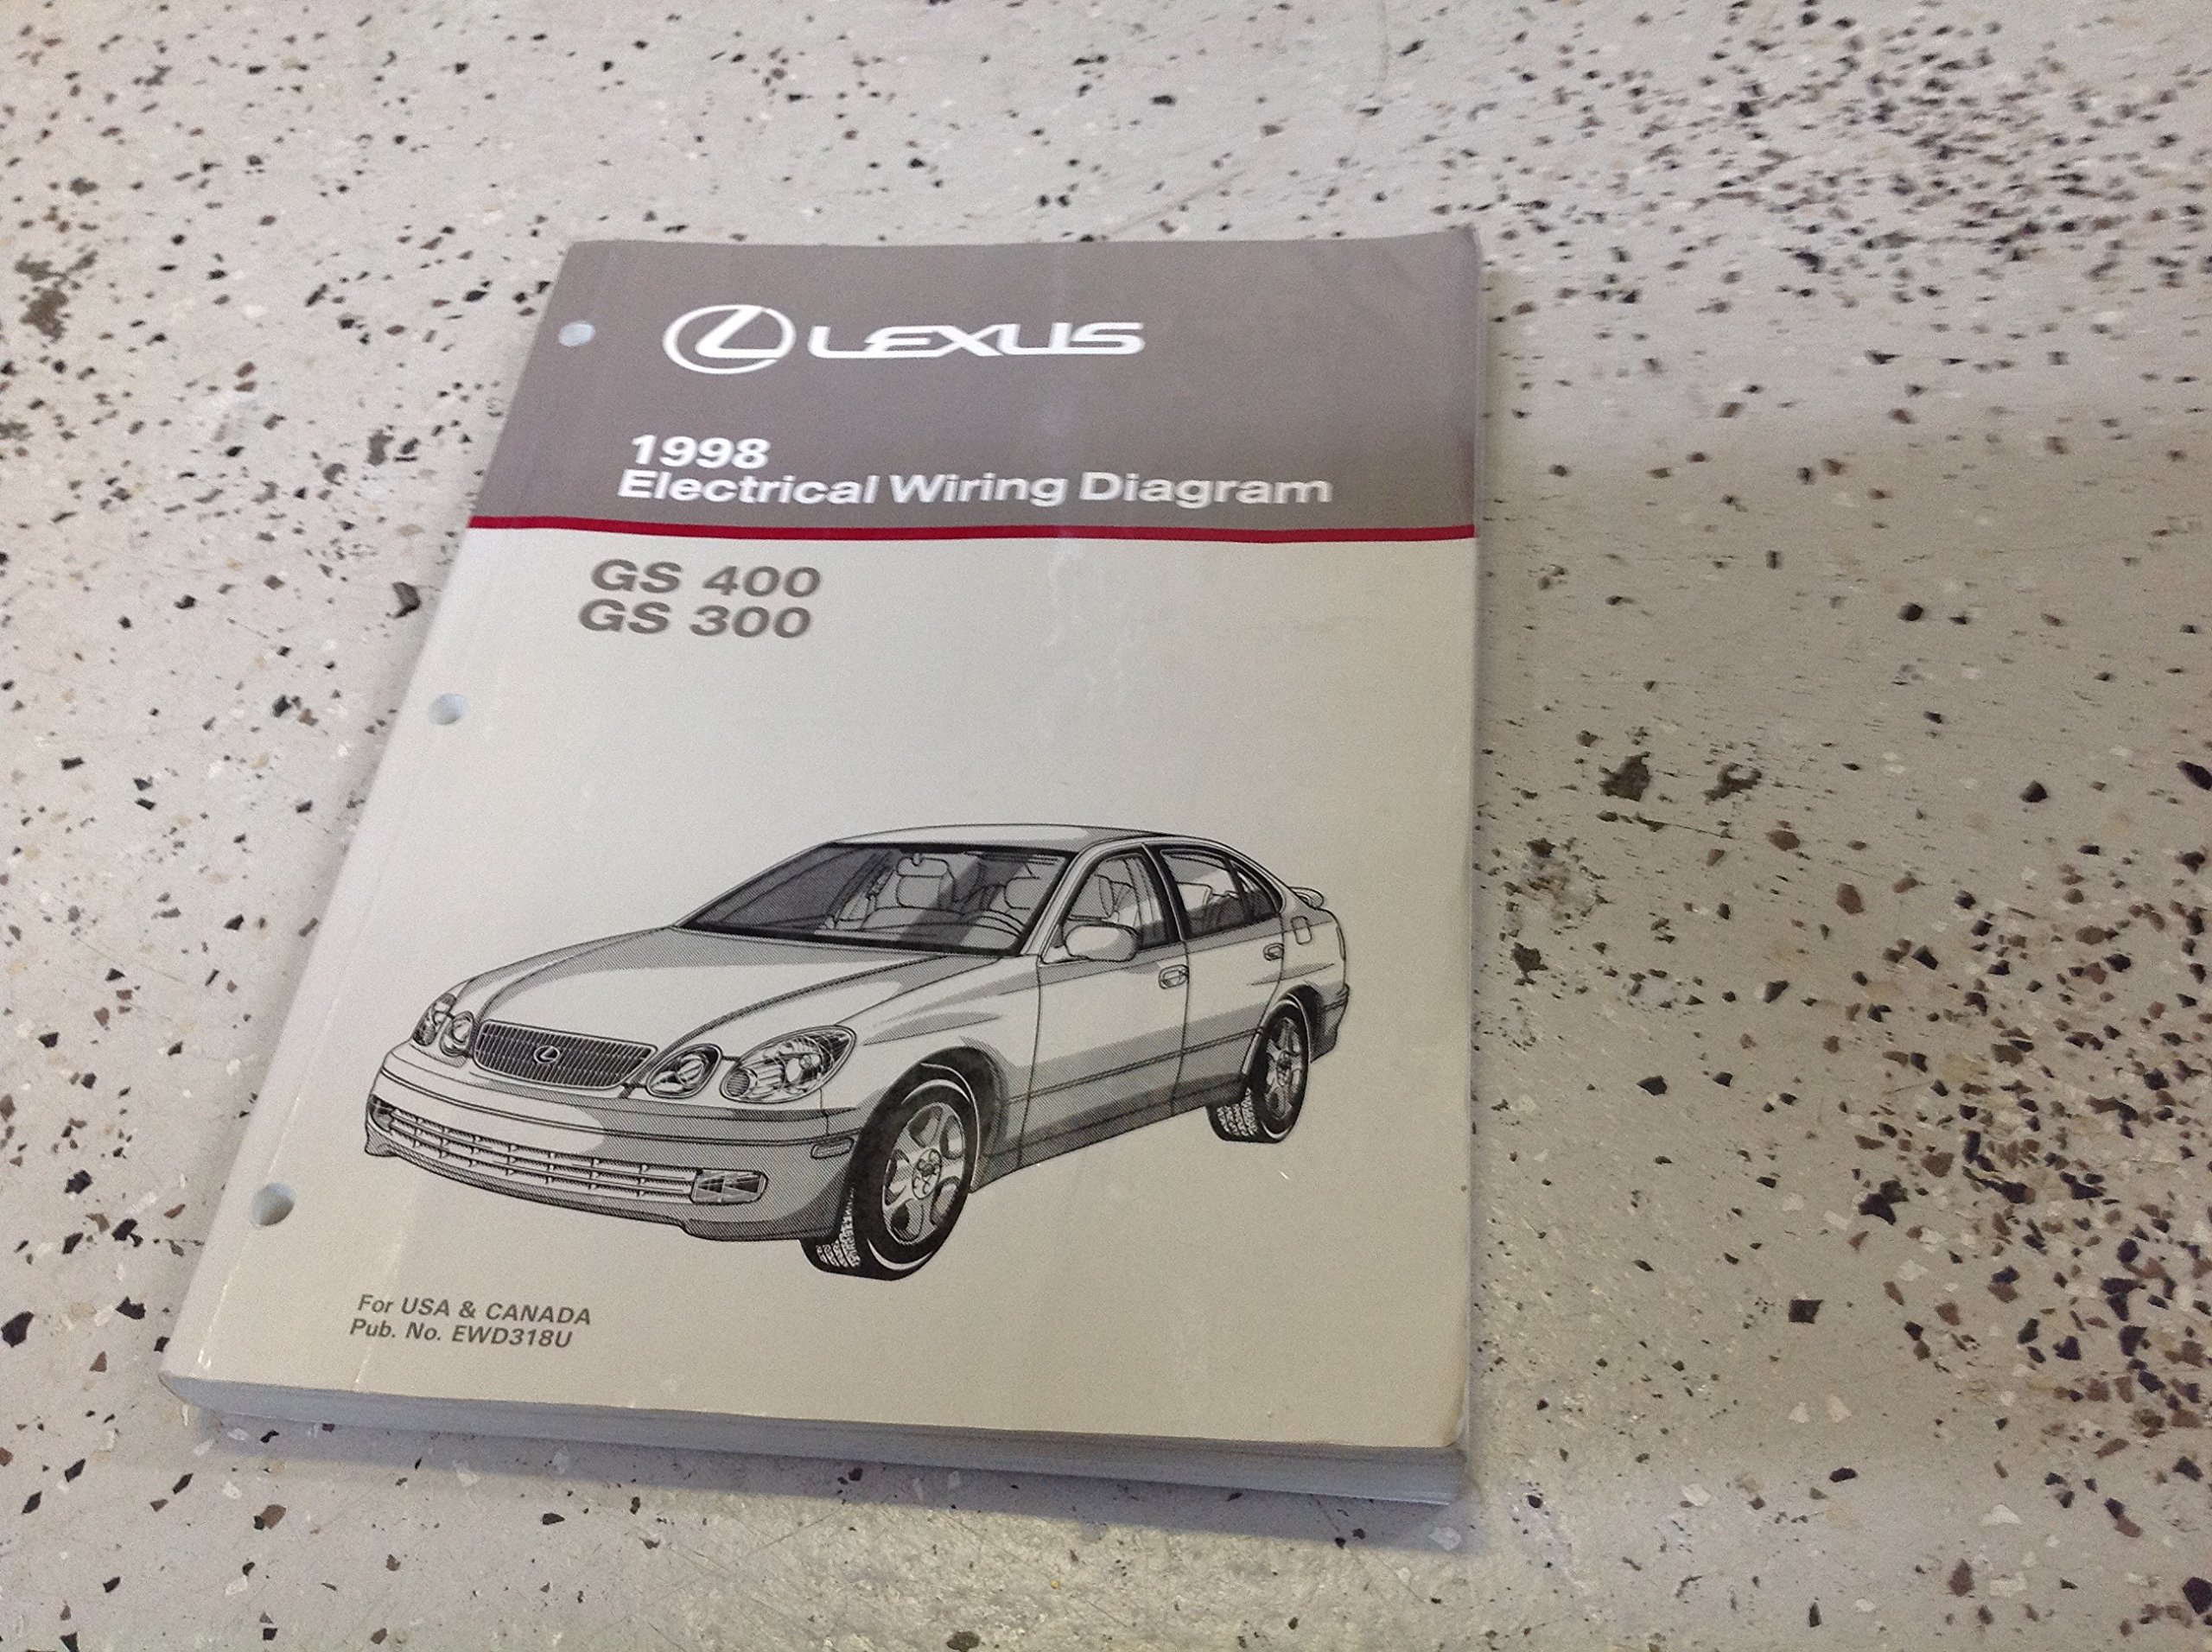 1998 lexus gs300 gs400 400 electrical wiring diagram service shop 1998 Green Lexus ES 400